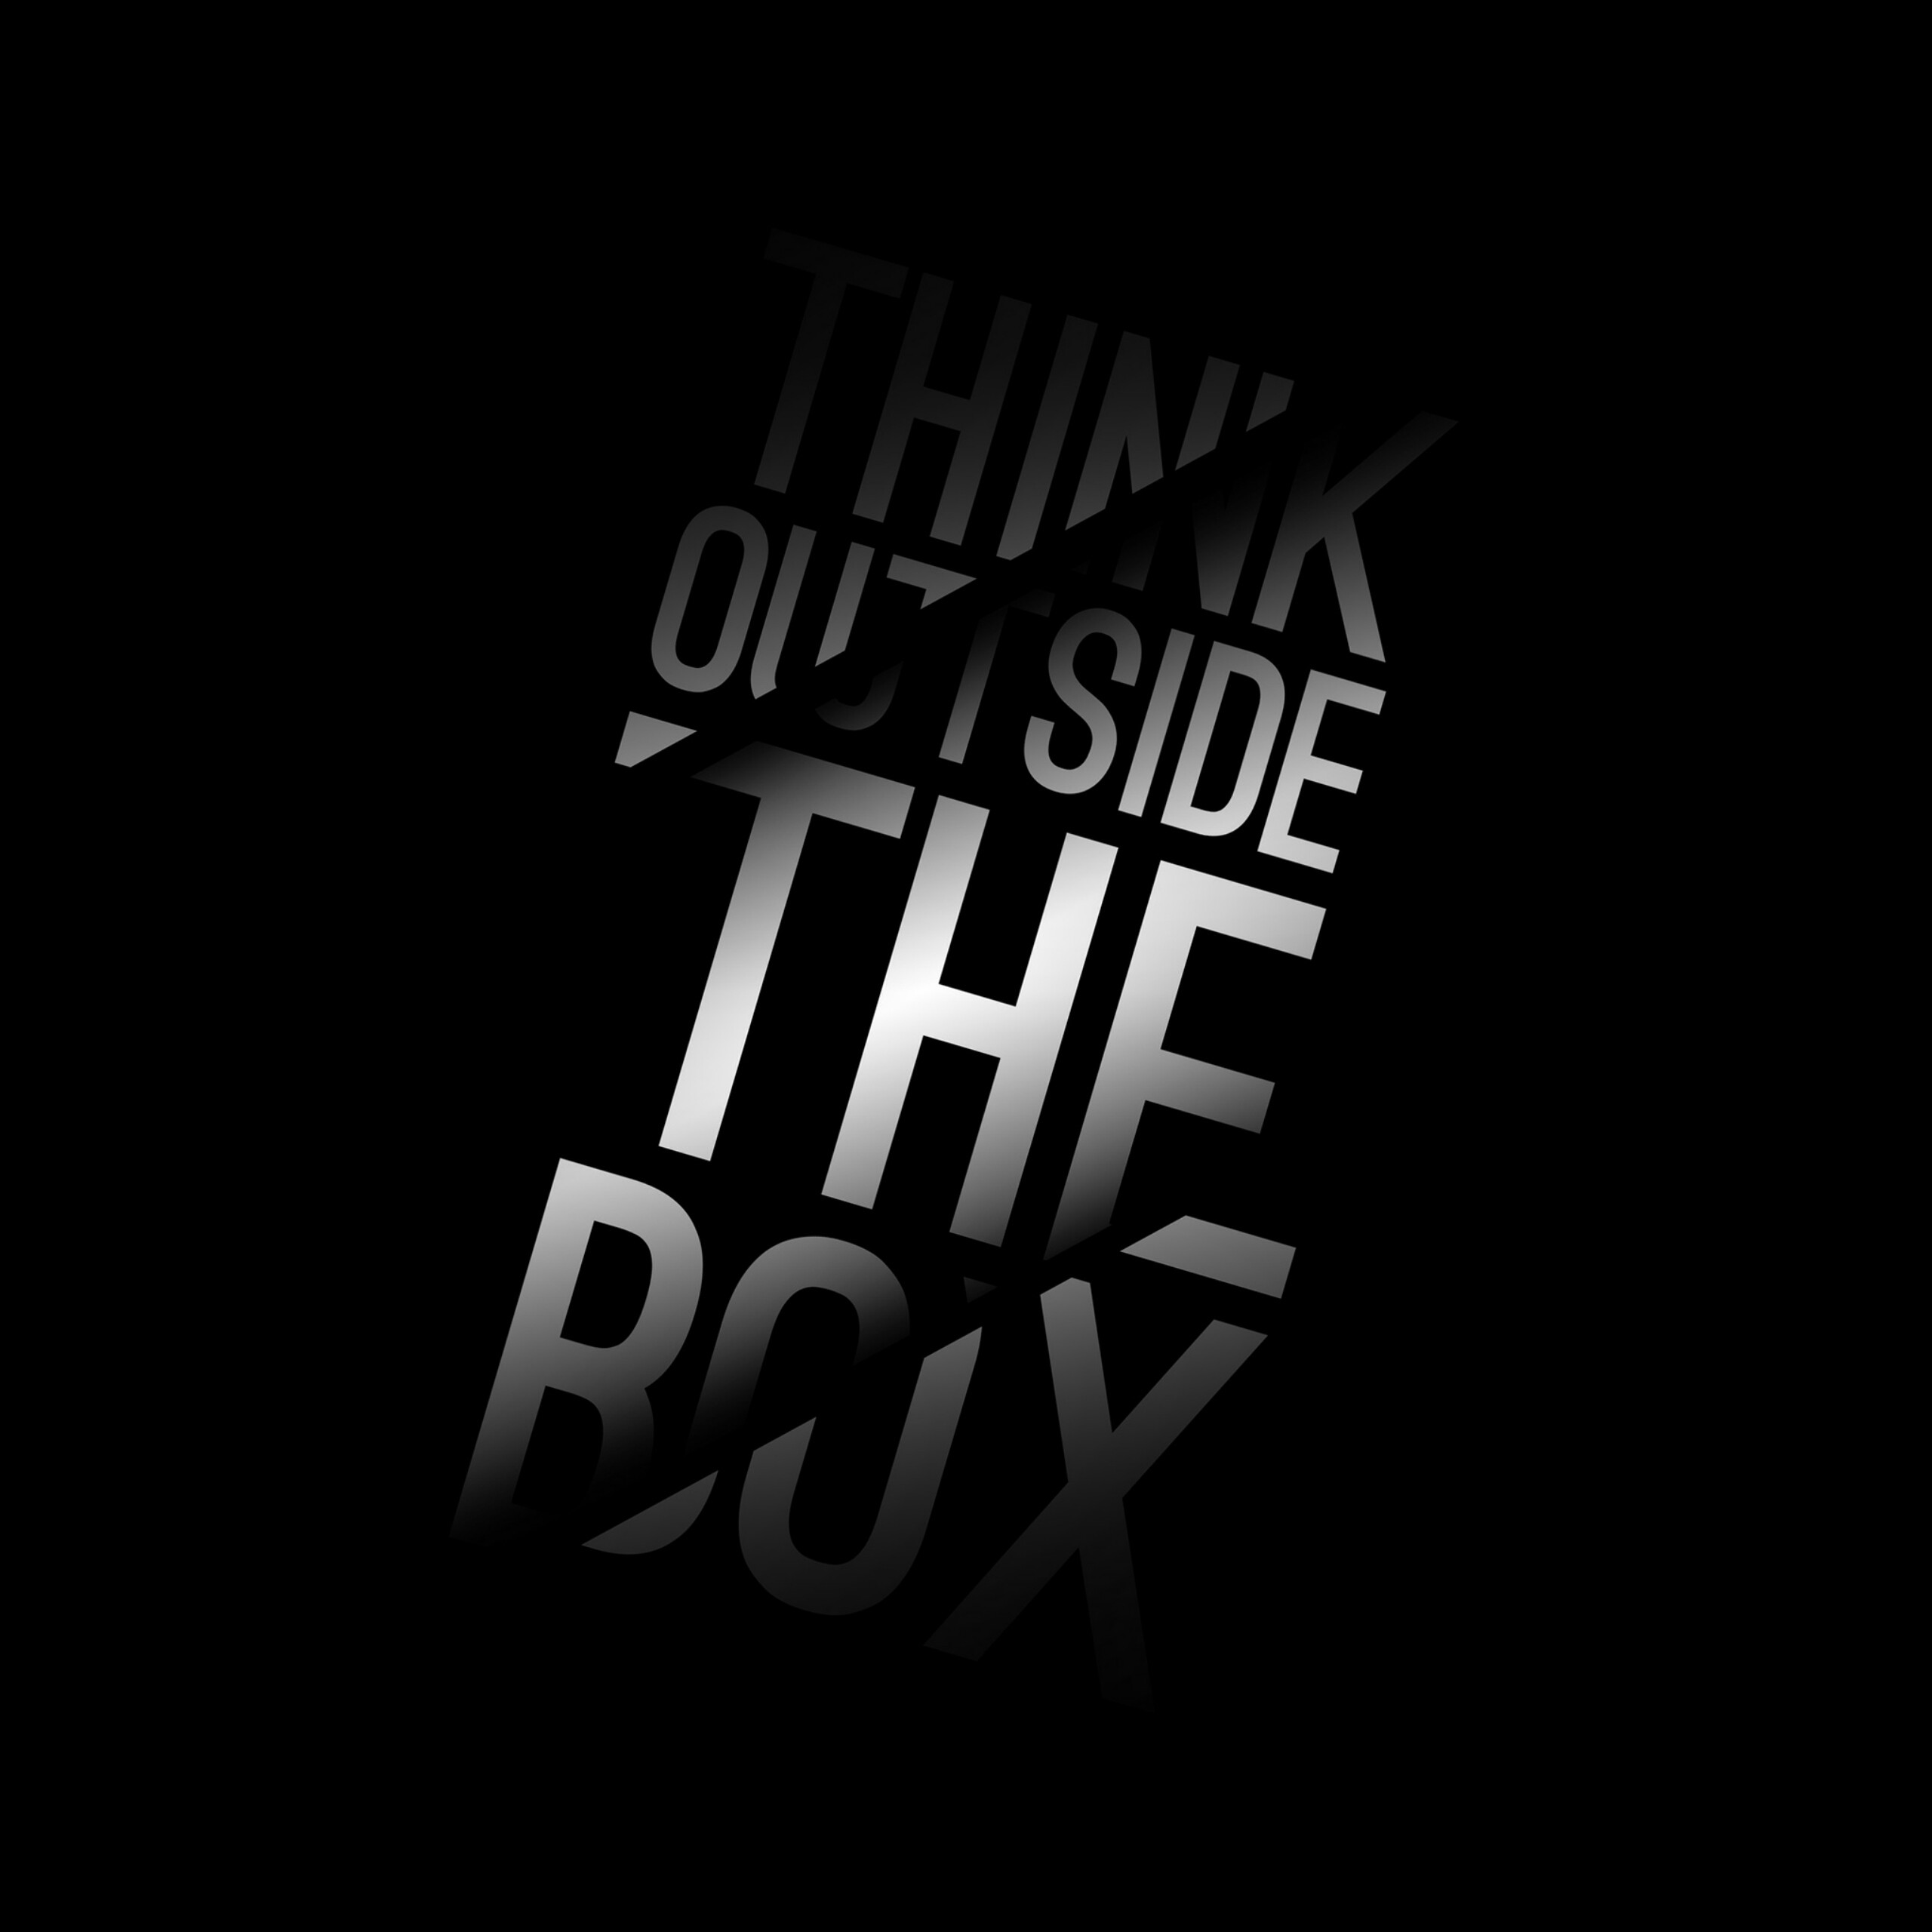 Think Out Of The Box 3D Full Hd Background